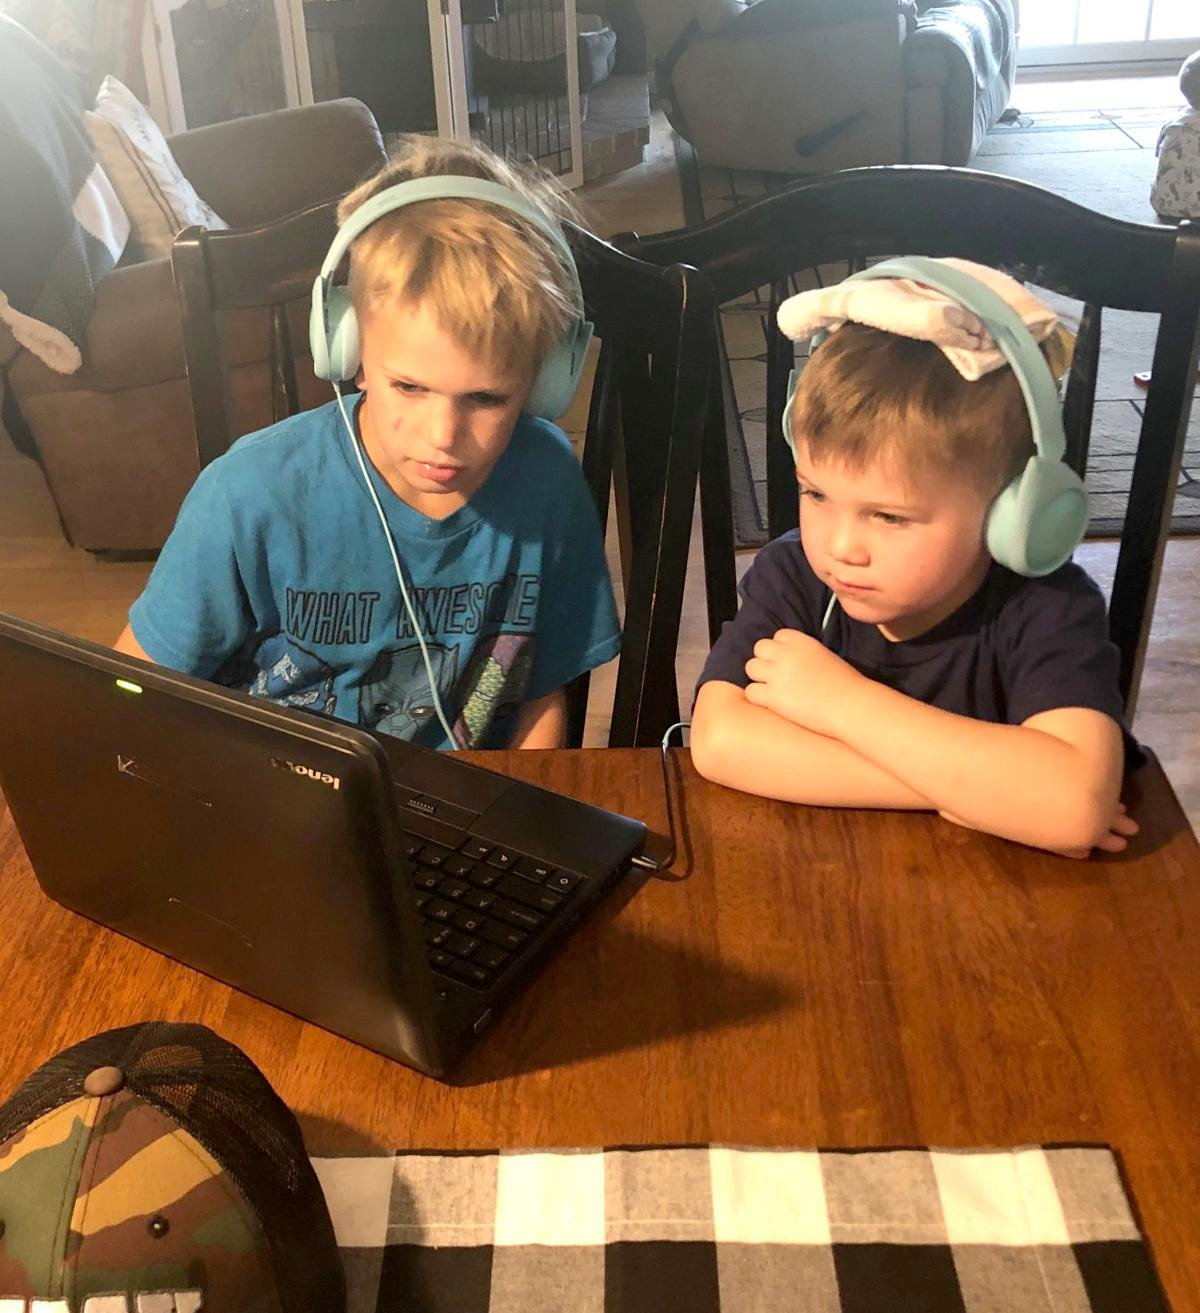 A first grader shares his Chromebook with a 3-year-old at Mother Hen's Farmhouse Friends in Valley Springs.